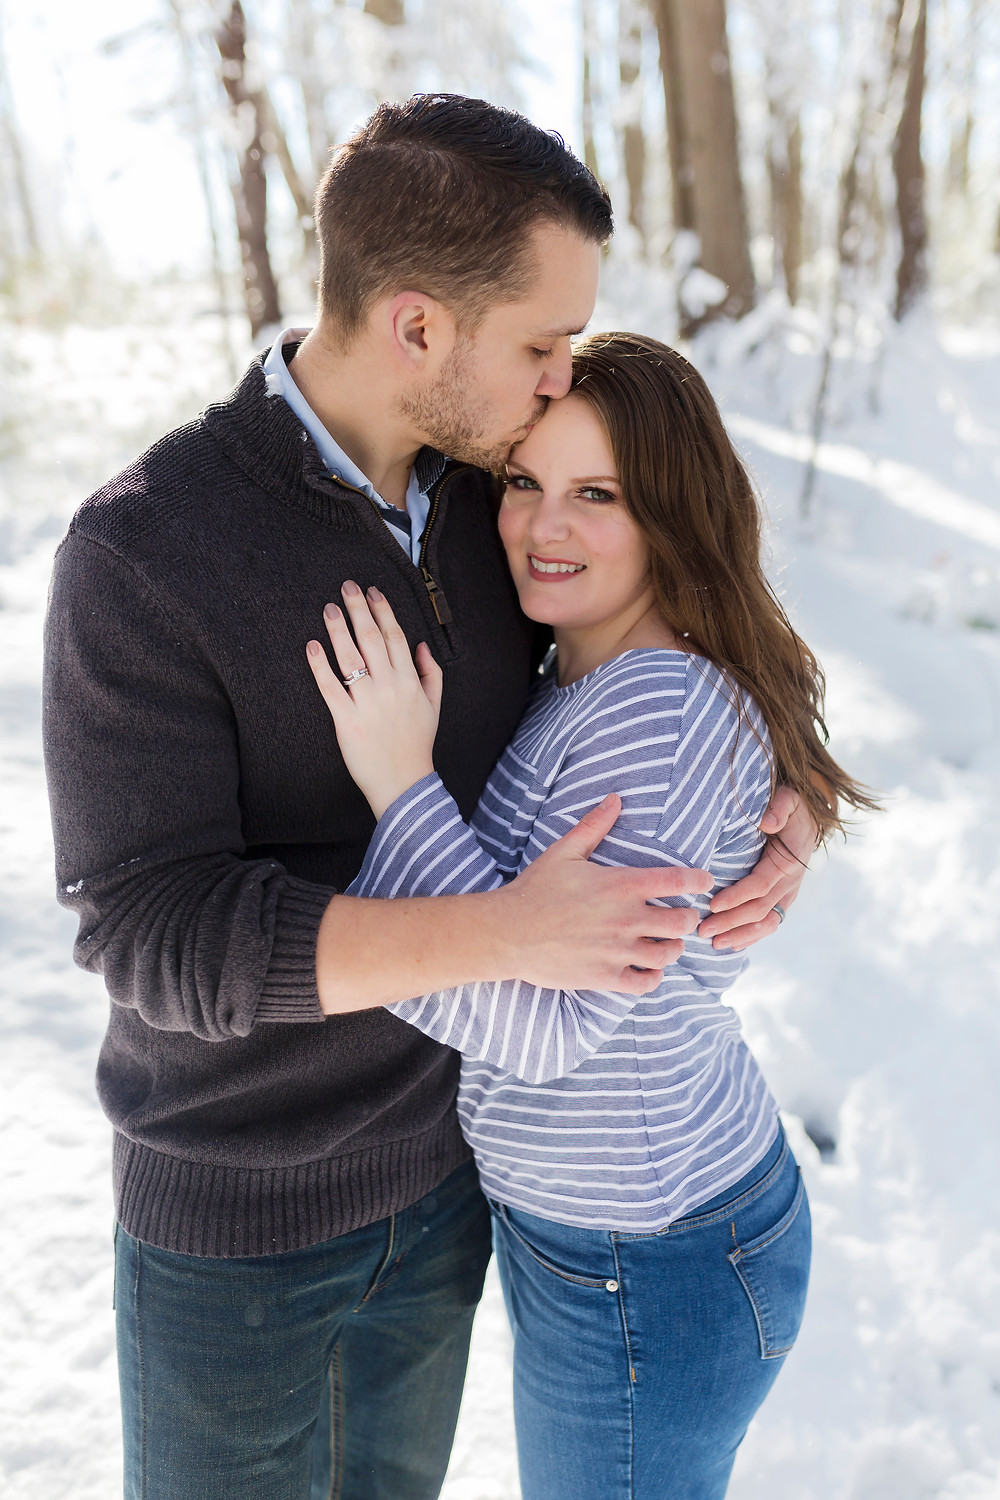 Winter elopement in Maine